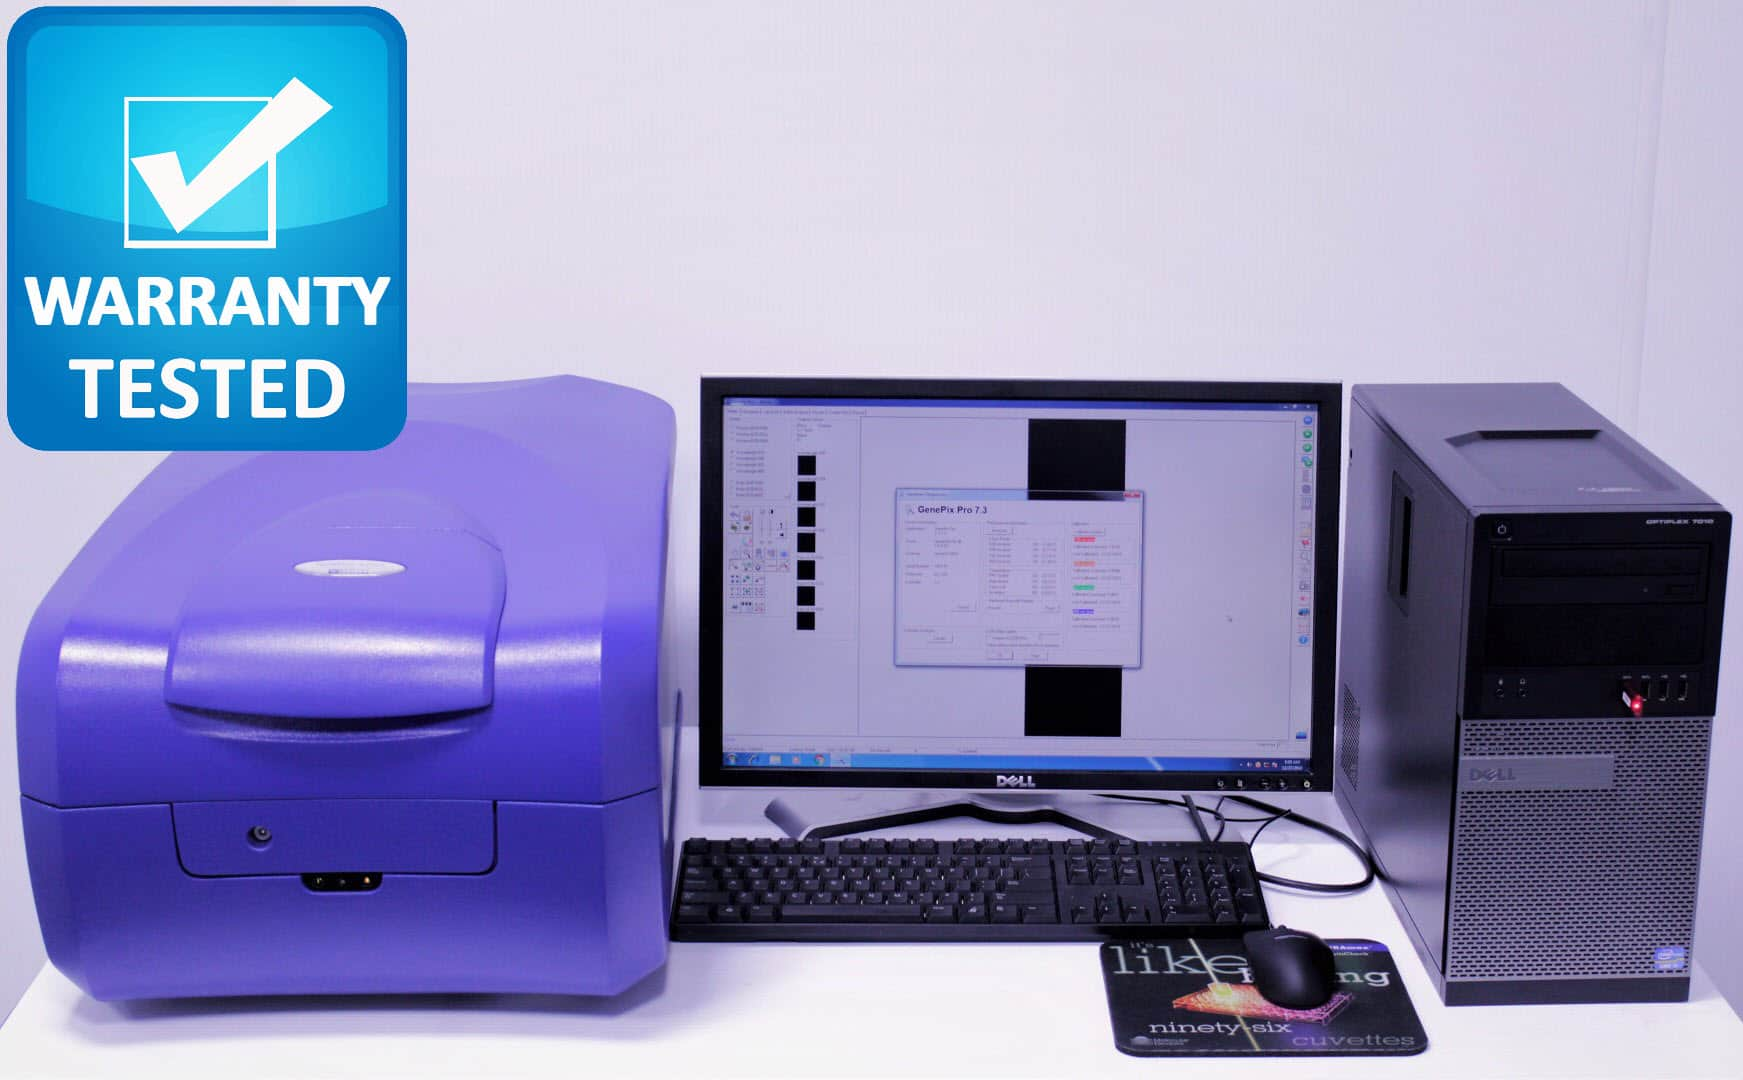 Molecular Devices GenePix 4400A Microarray Scanner